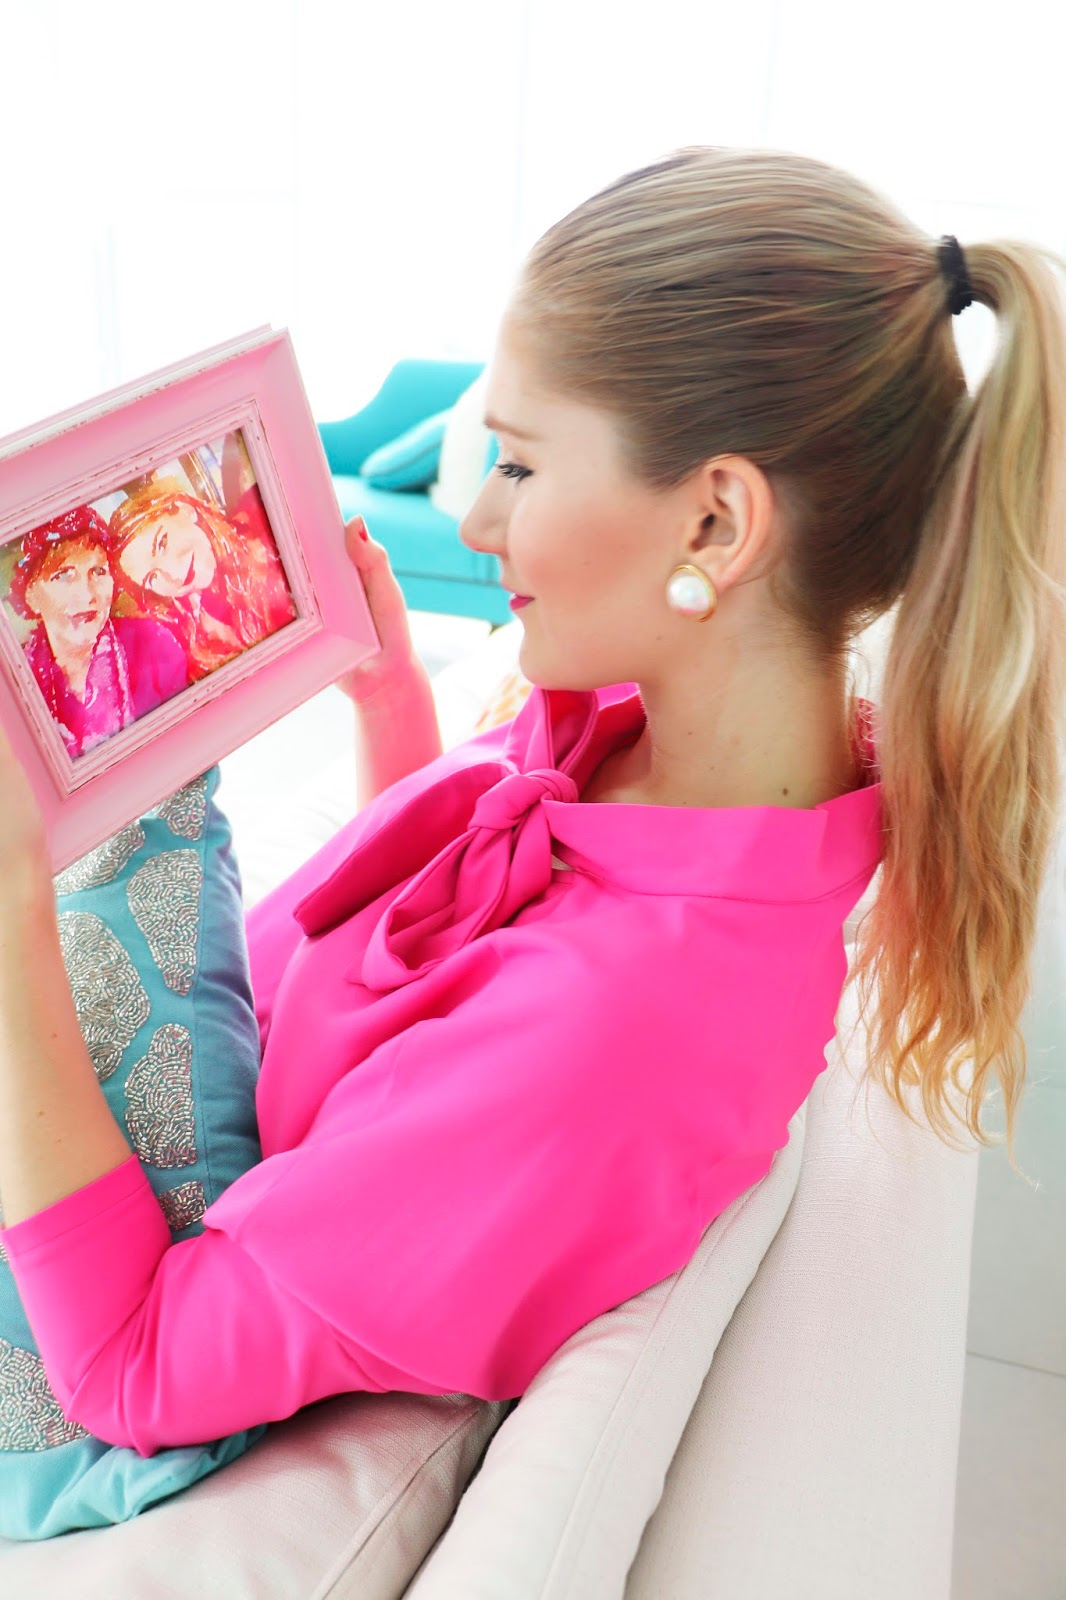 Colorful picture frames are a great way to add pops of color throughout your home